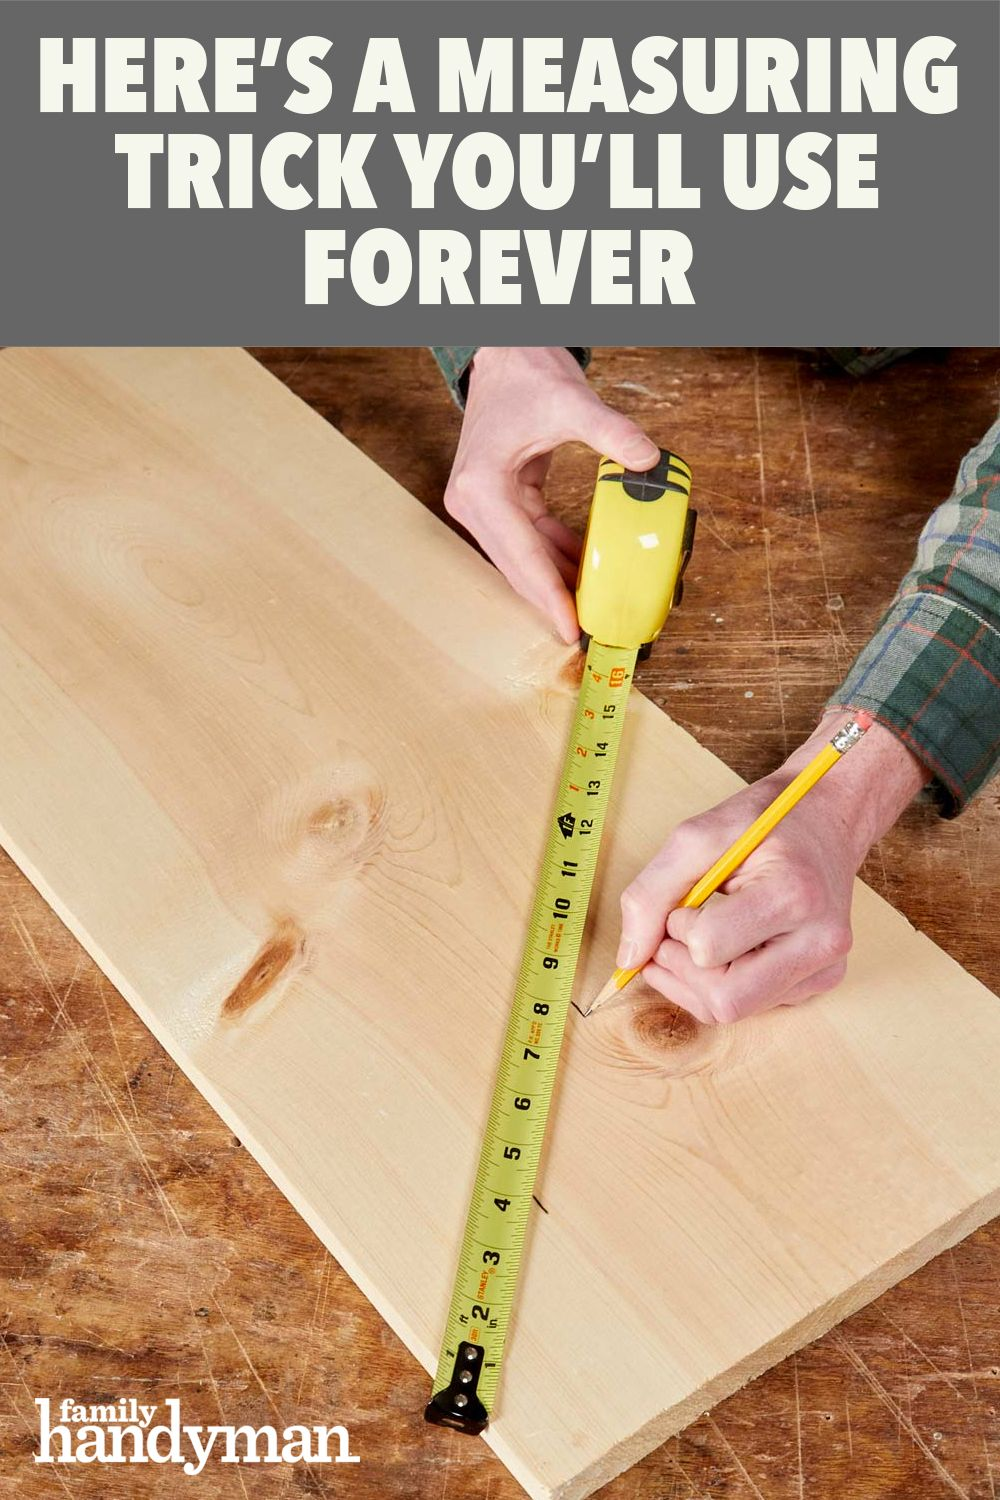 Here's a Measuring Trick You'll Use Forever